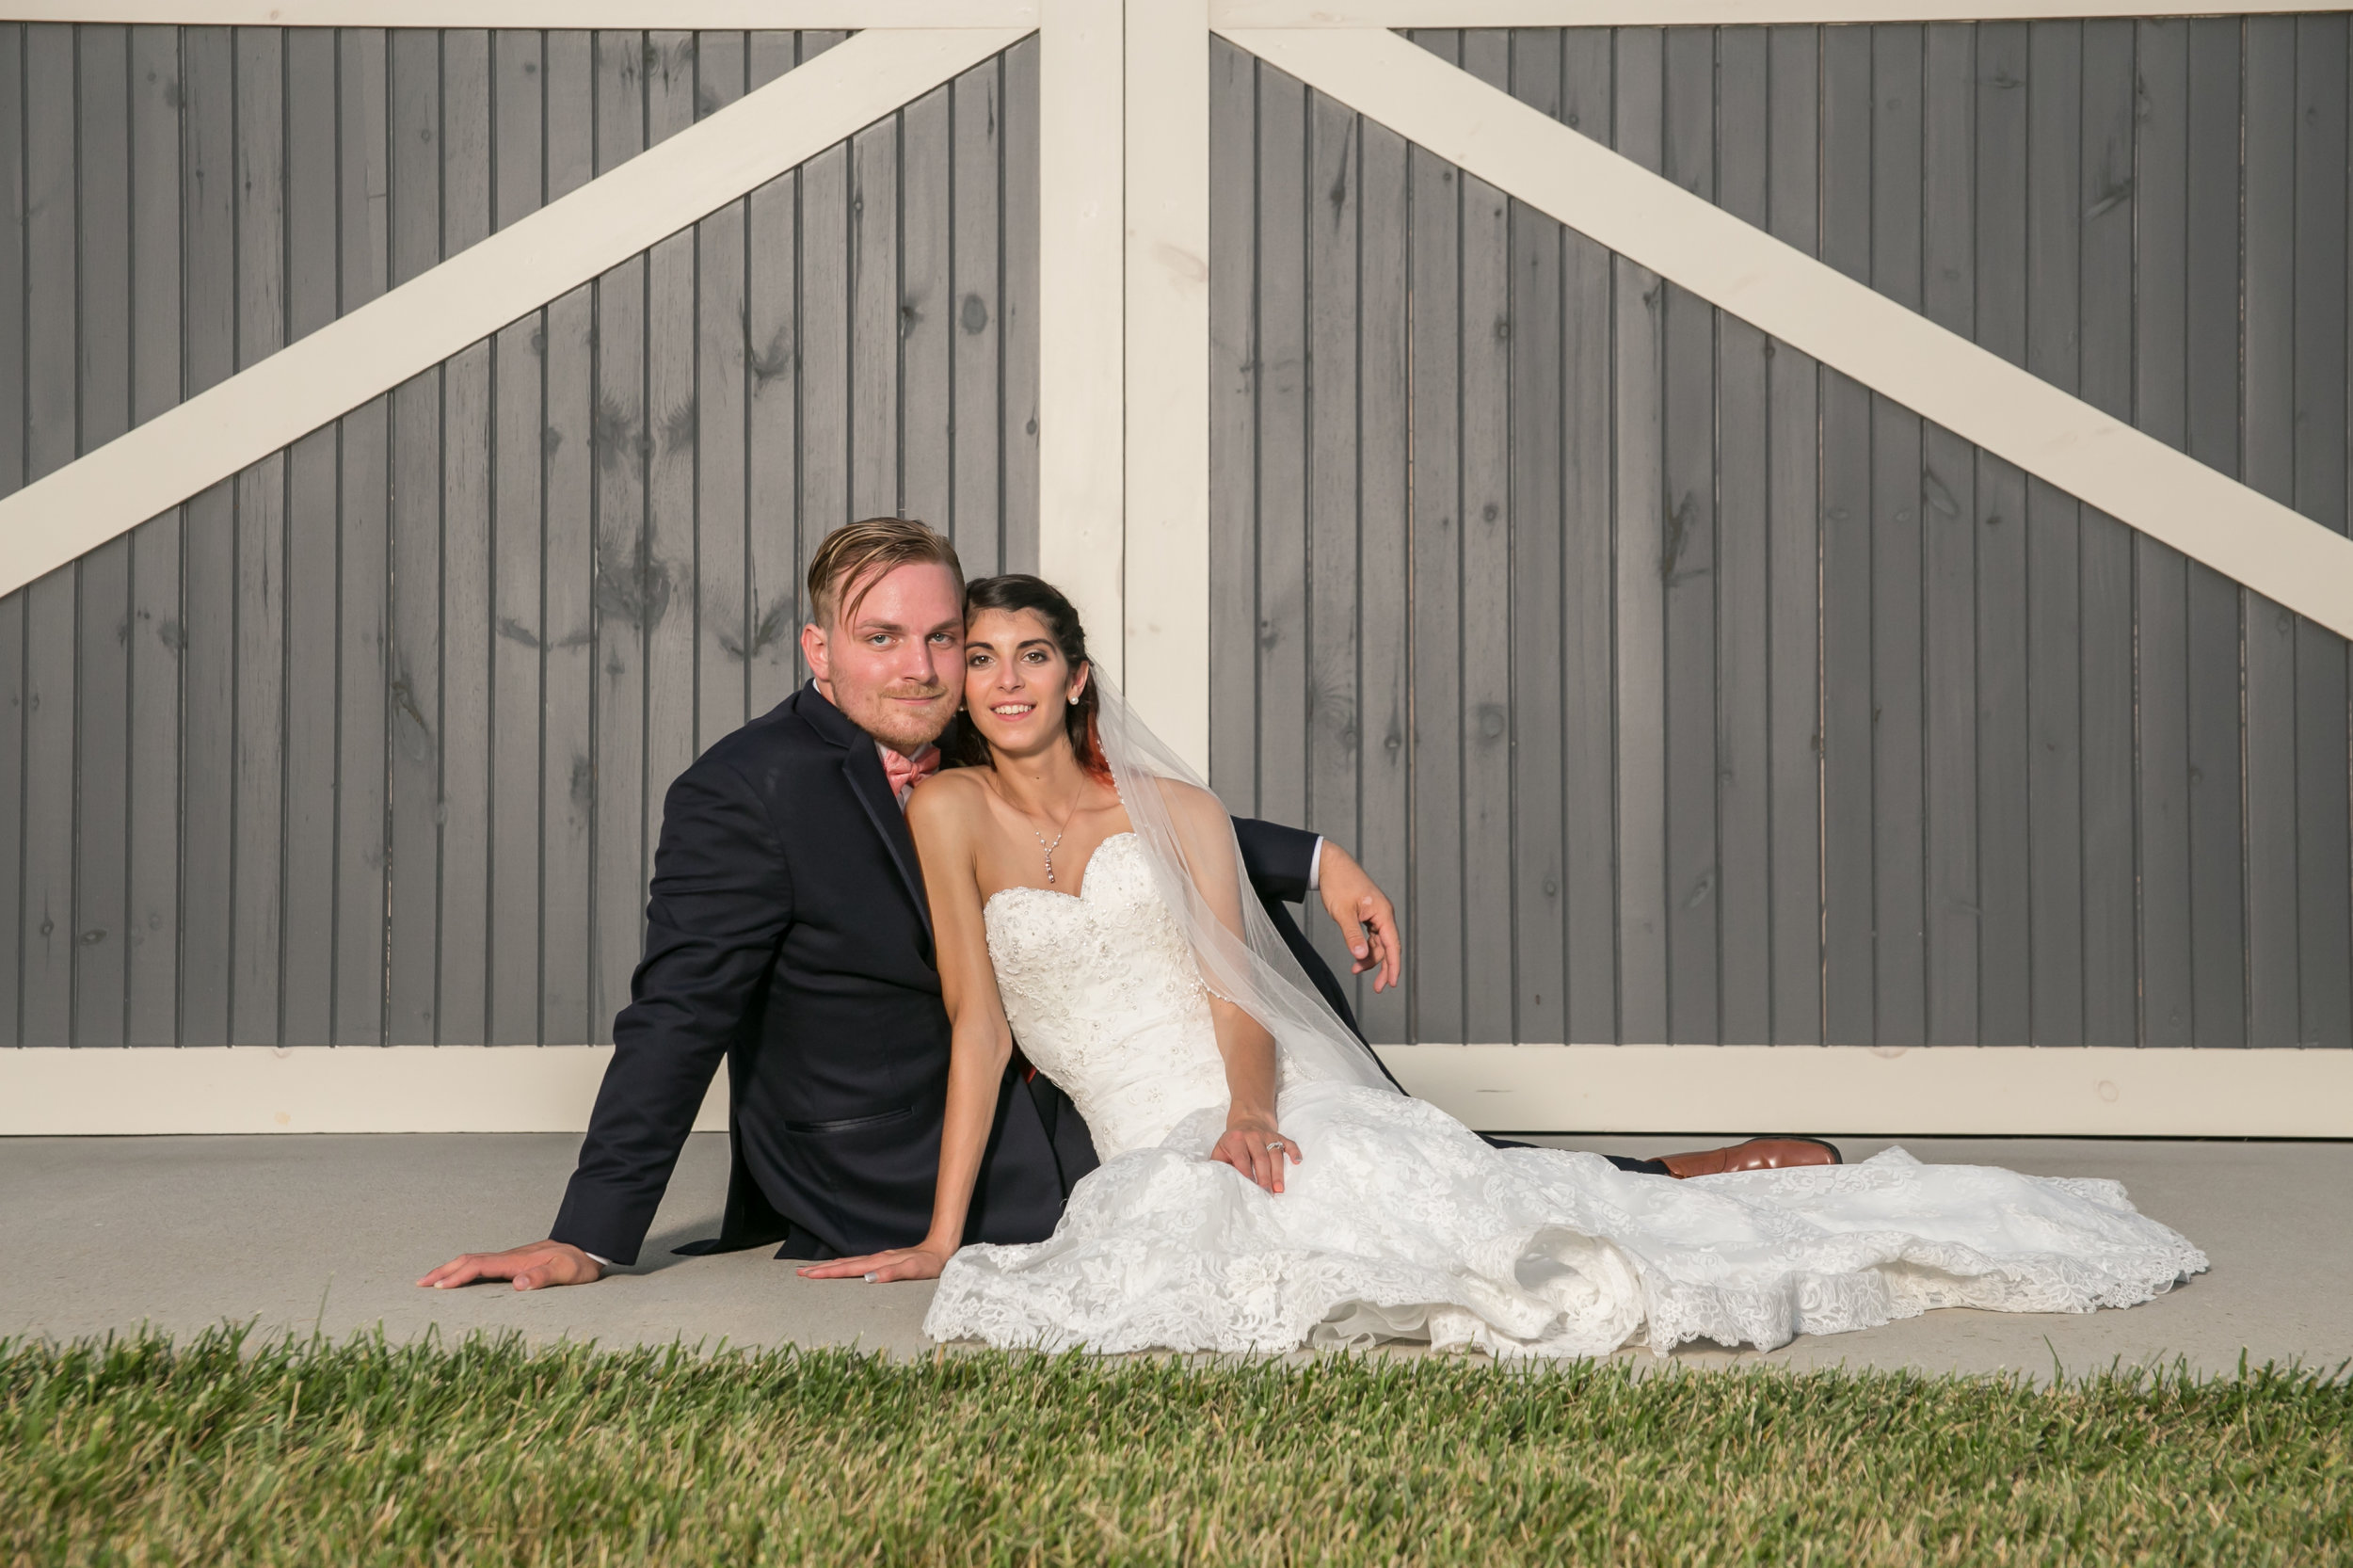 Anastasia and Jeremiah, The Silo Event Center, Hopkinsville, KY